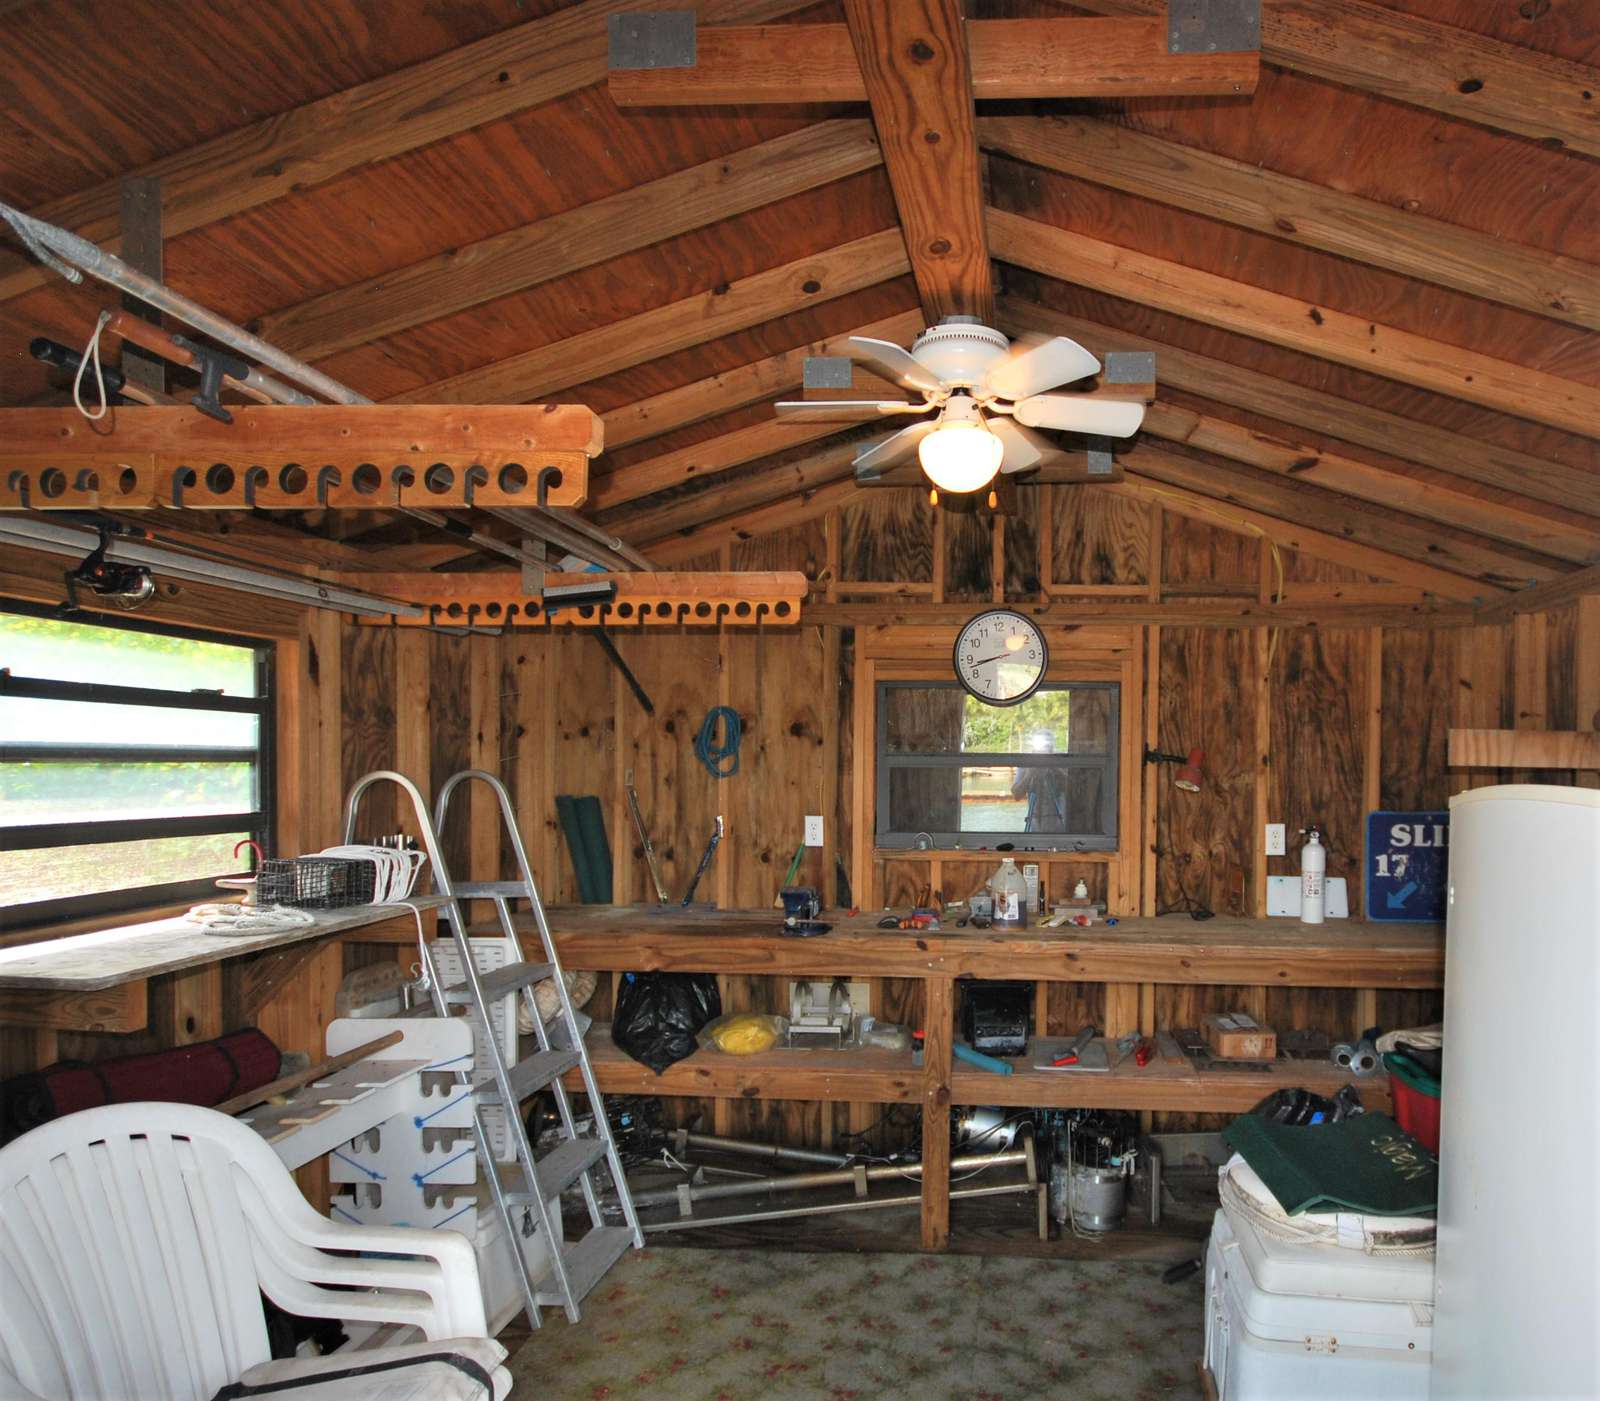 The Boat House has plenty of storage area to keeo your fishing and dive gear safe